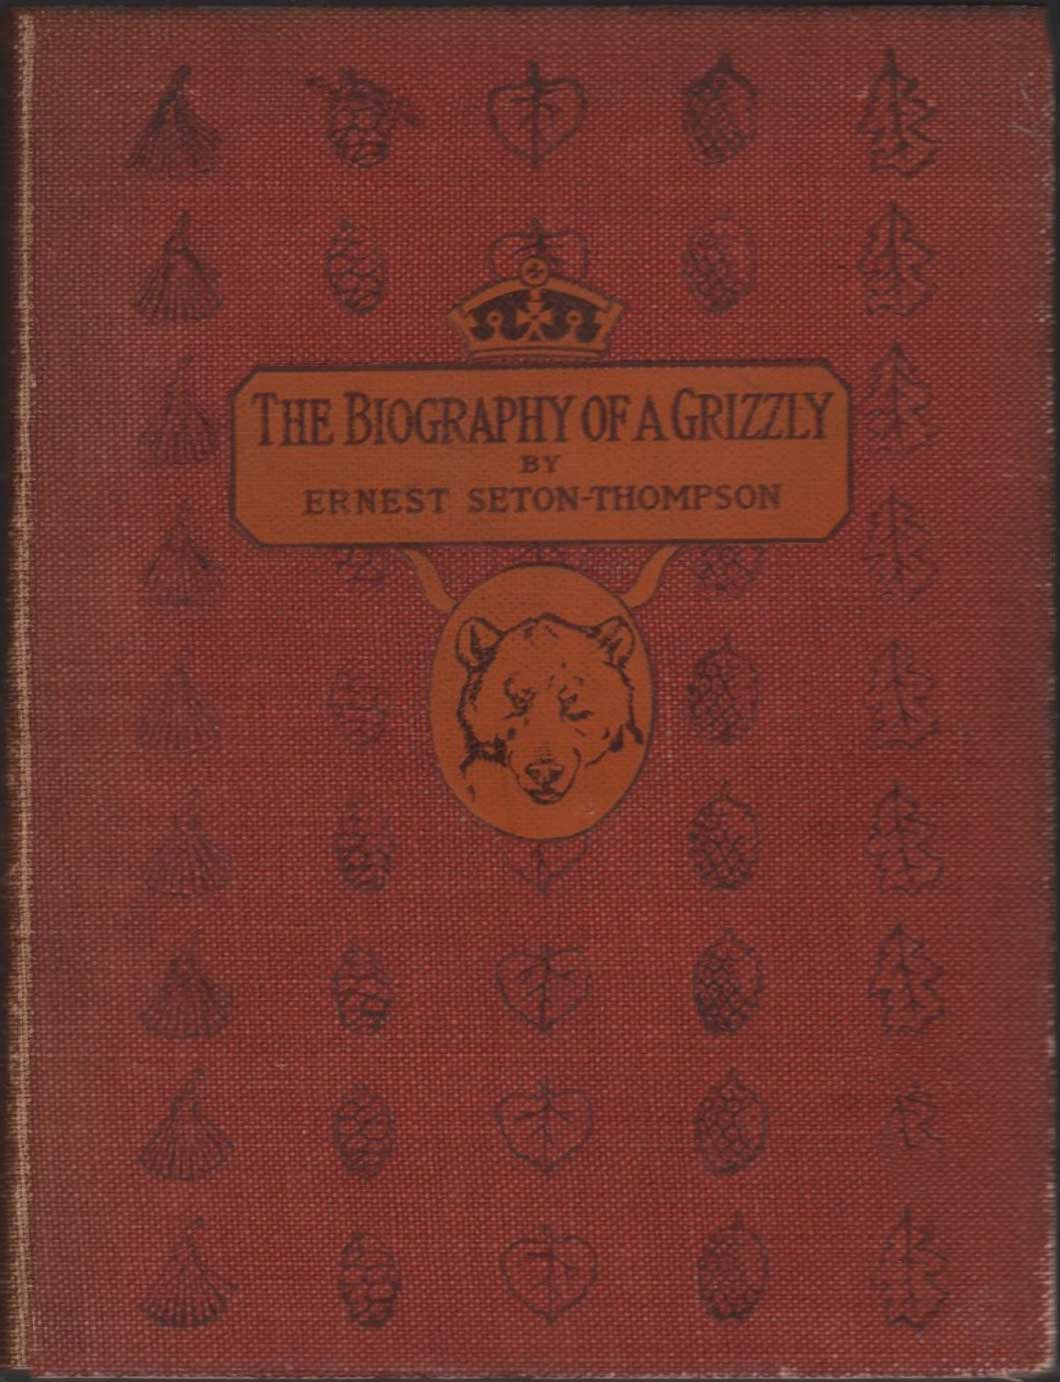 Biography of a Grizzly by Ernest Seton-Thompson